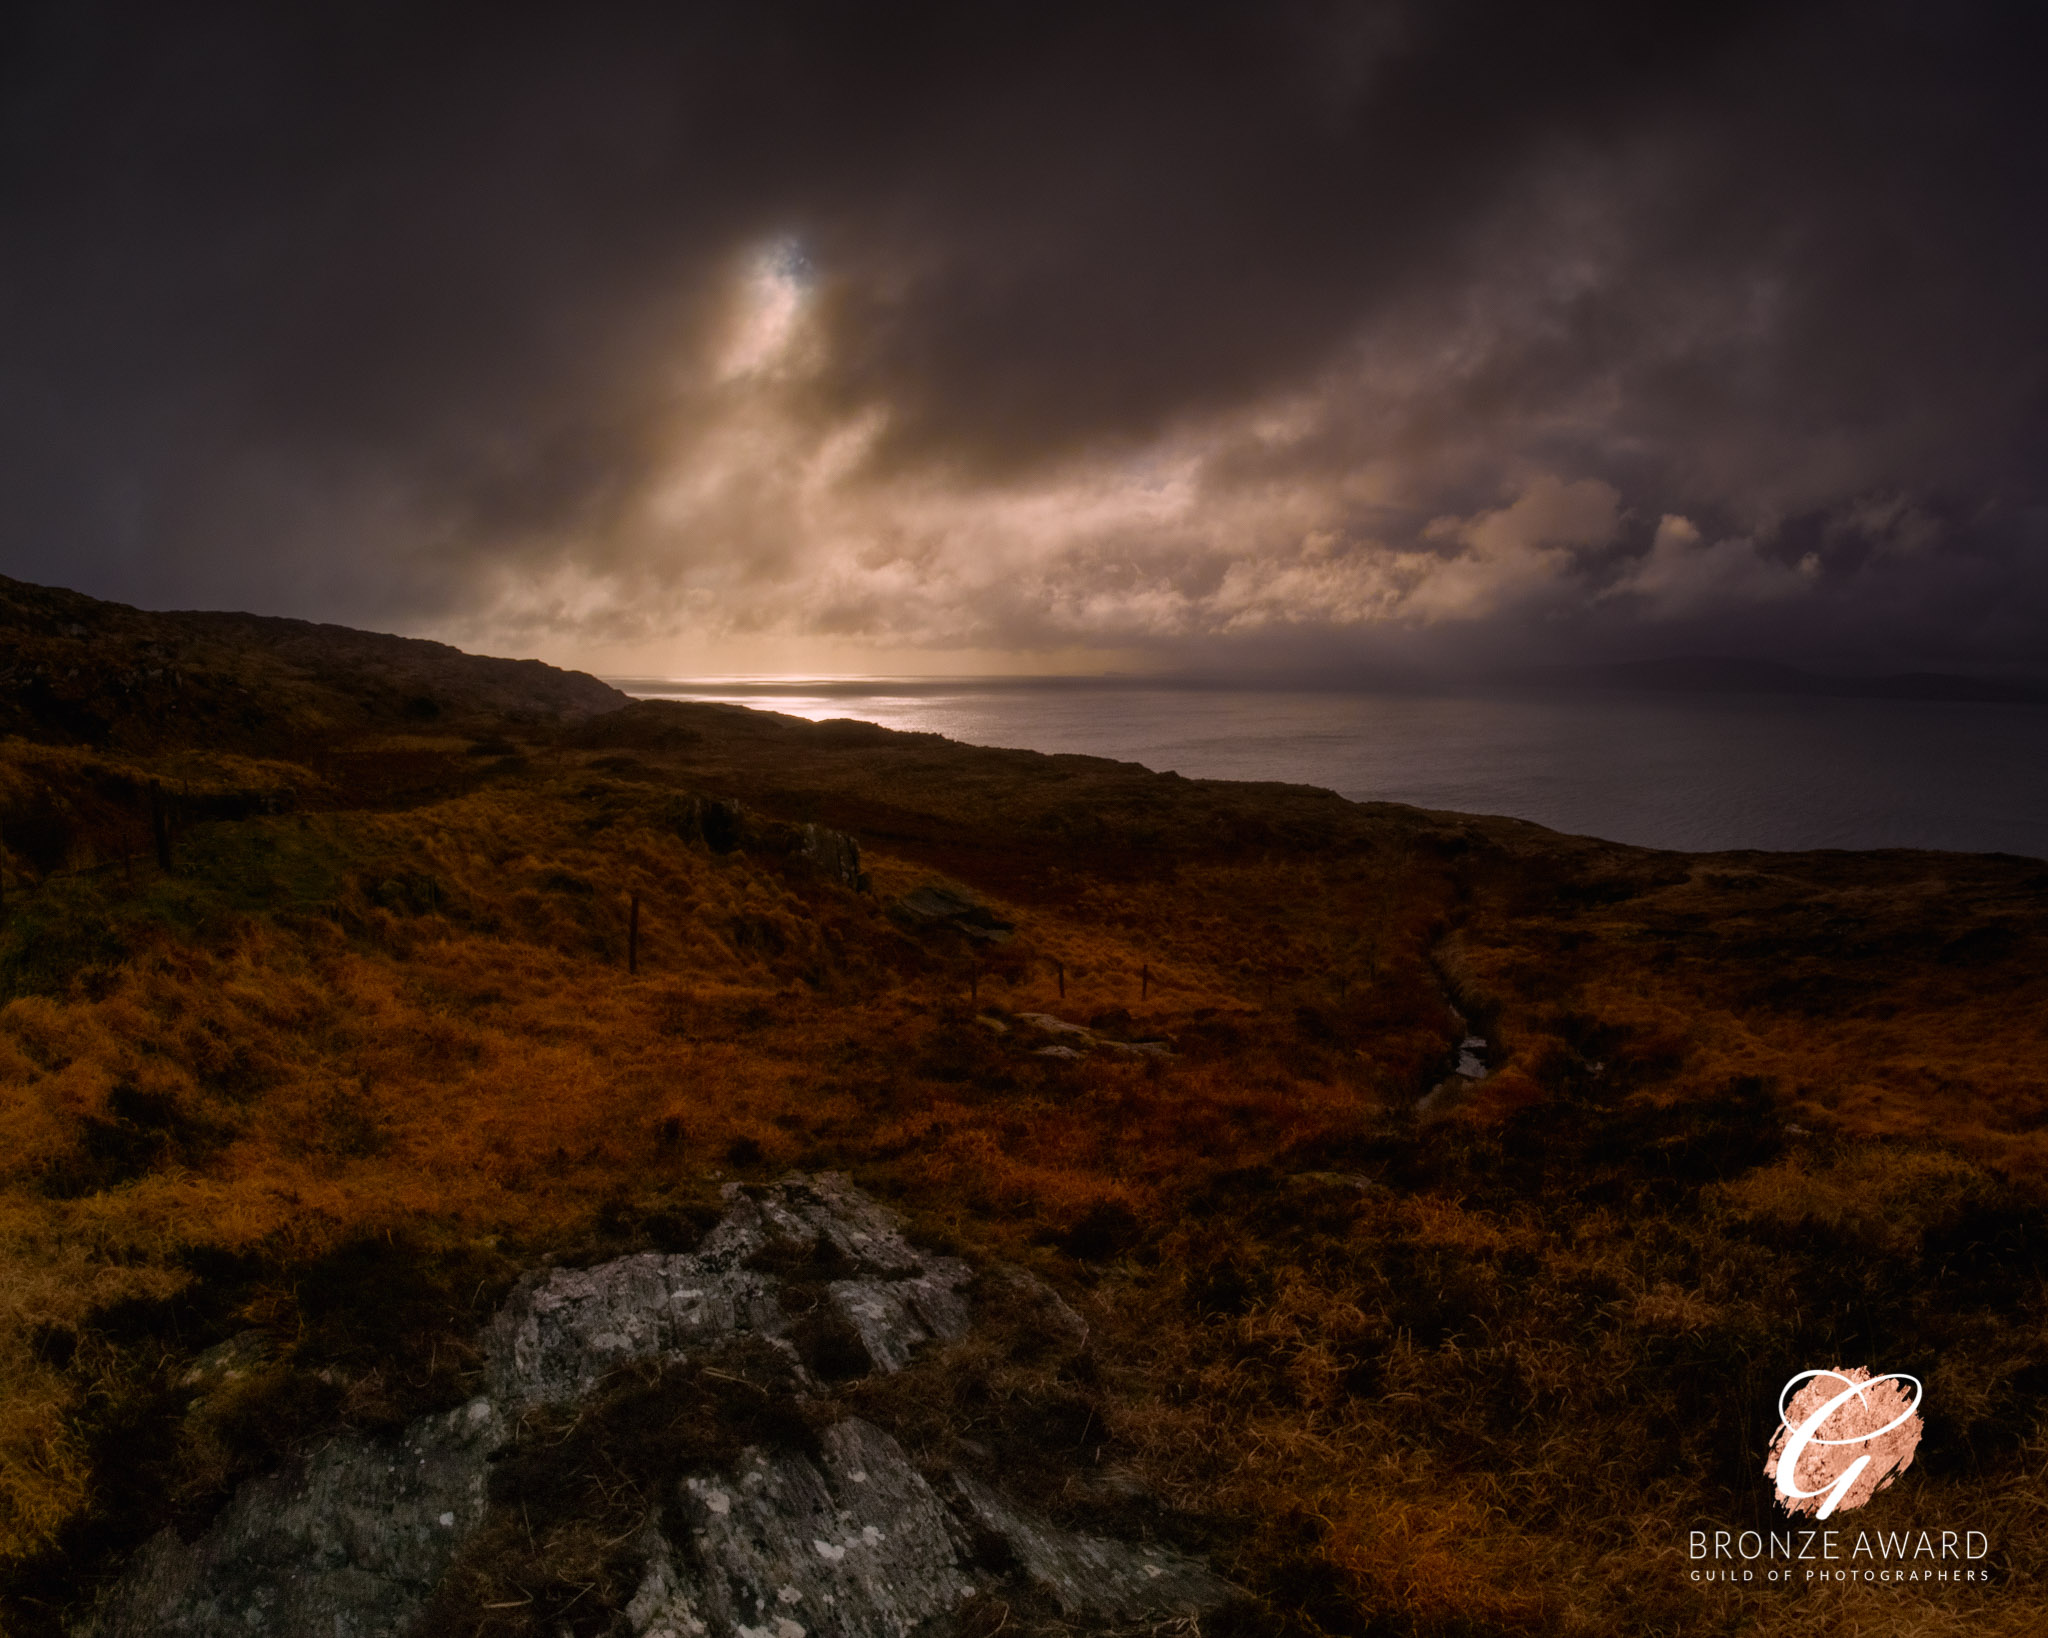 An autumnal view along the Wild Atlantic Way looking out over orange-brown bracken towards the Atlantic